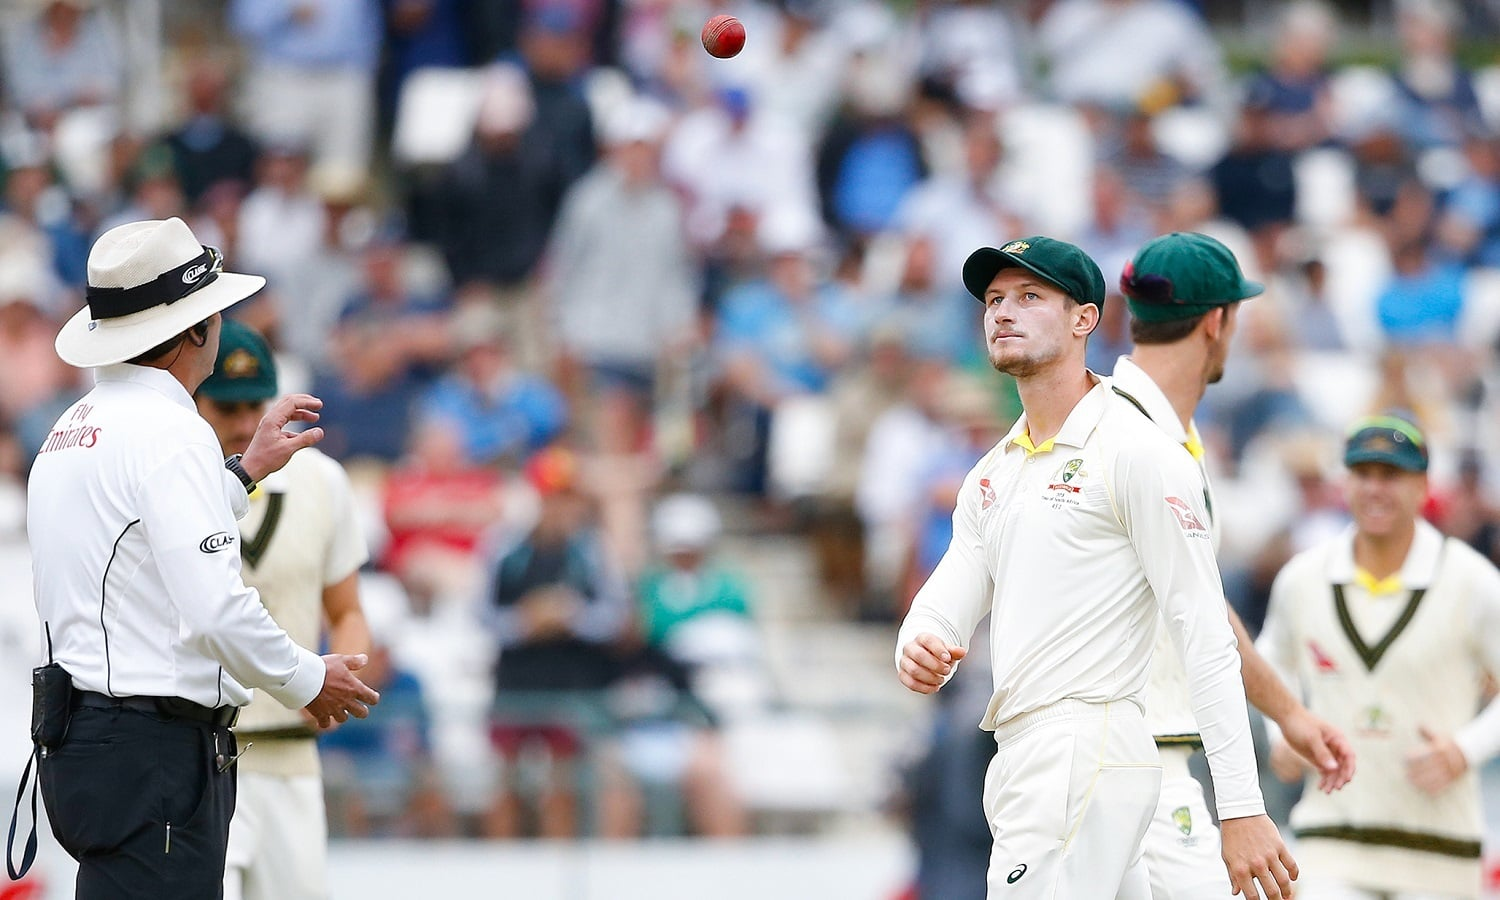 Cameron Bancroft was one of three Australian players banned in a ball-tampering scandal. — AFP